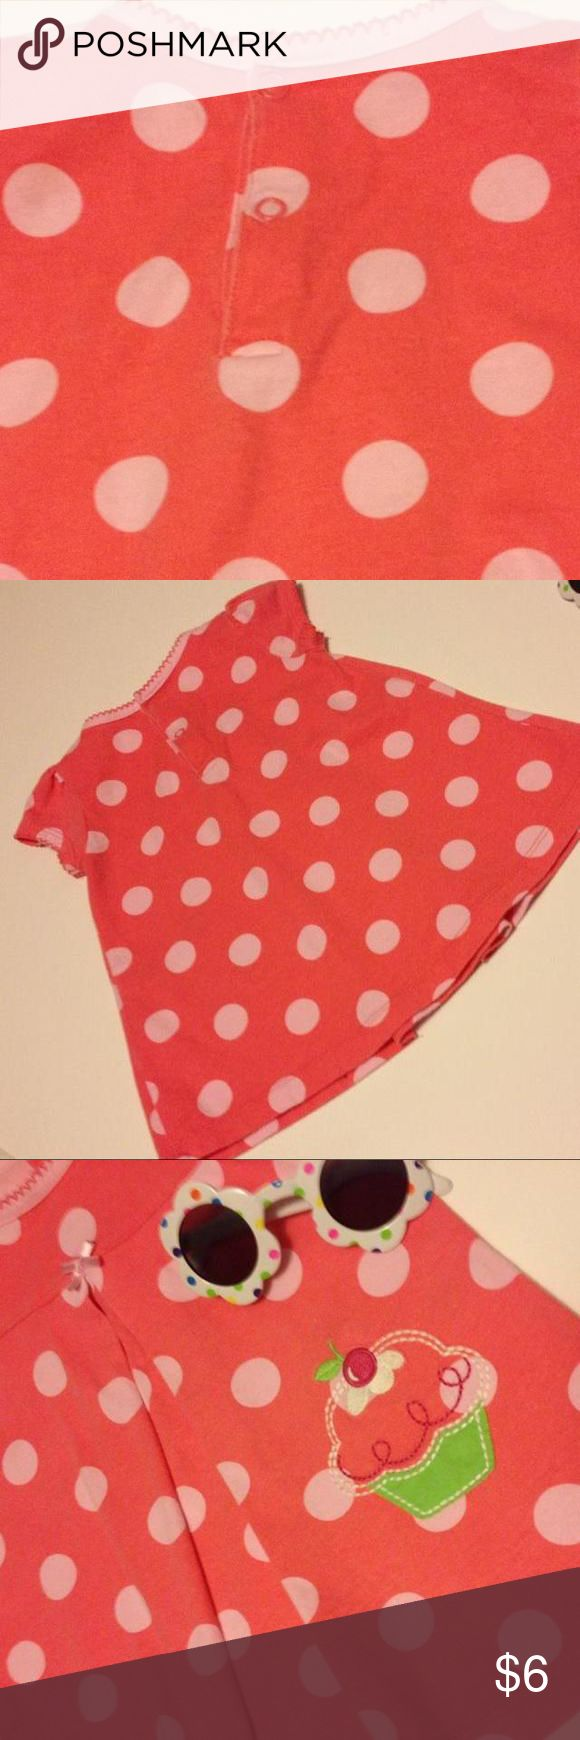 Child of Mine--Carter's -- 6-9 Months Child of Mine--Carter's -- 6-9 Months Pinkish-peach in color with white polka dots and appliqué cup cake. Such a cute little dress that looks darling on. 100% cotton making for a nice cool dress on those hot summer days. Dress is very soft to the touch! Carters Dresses